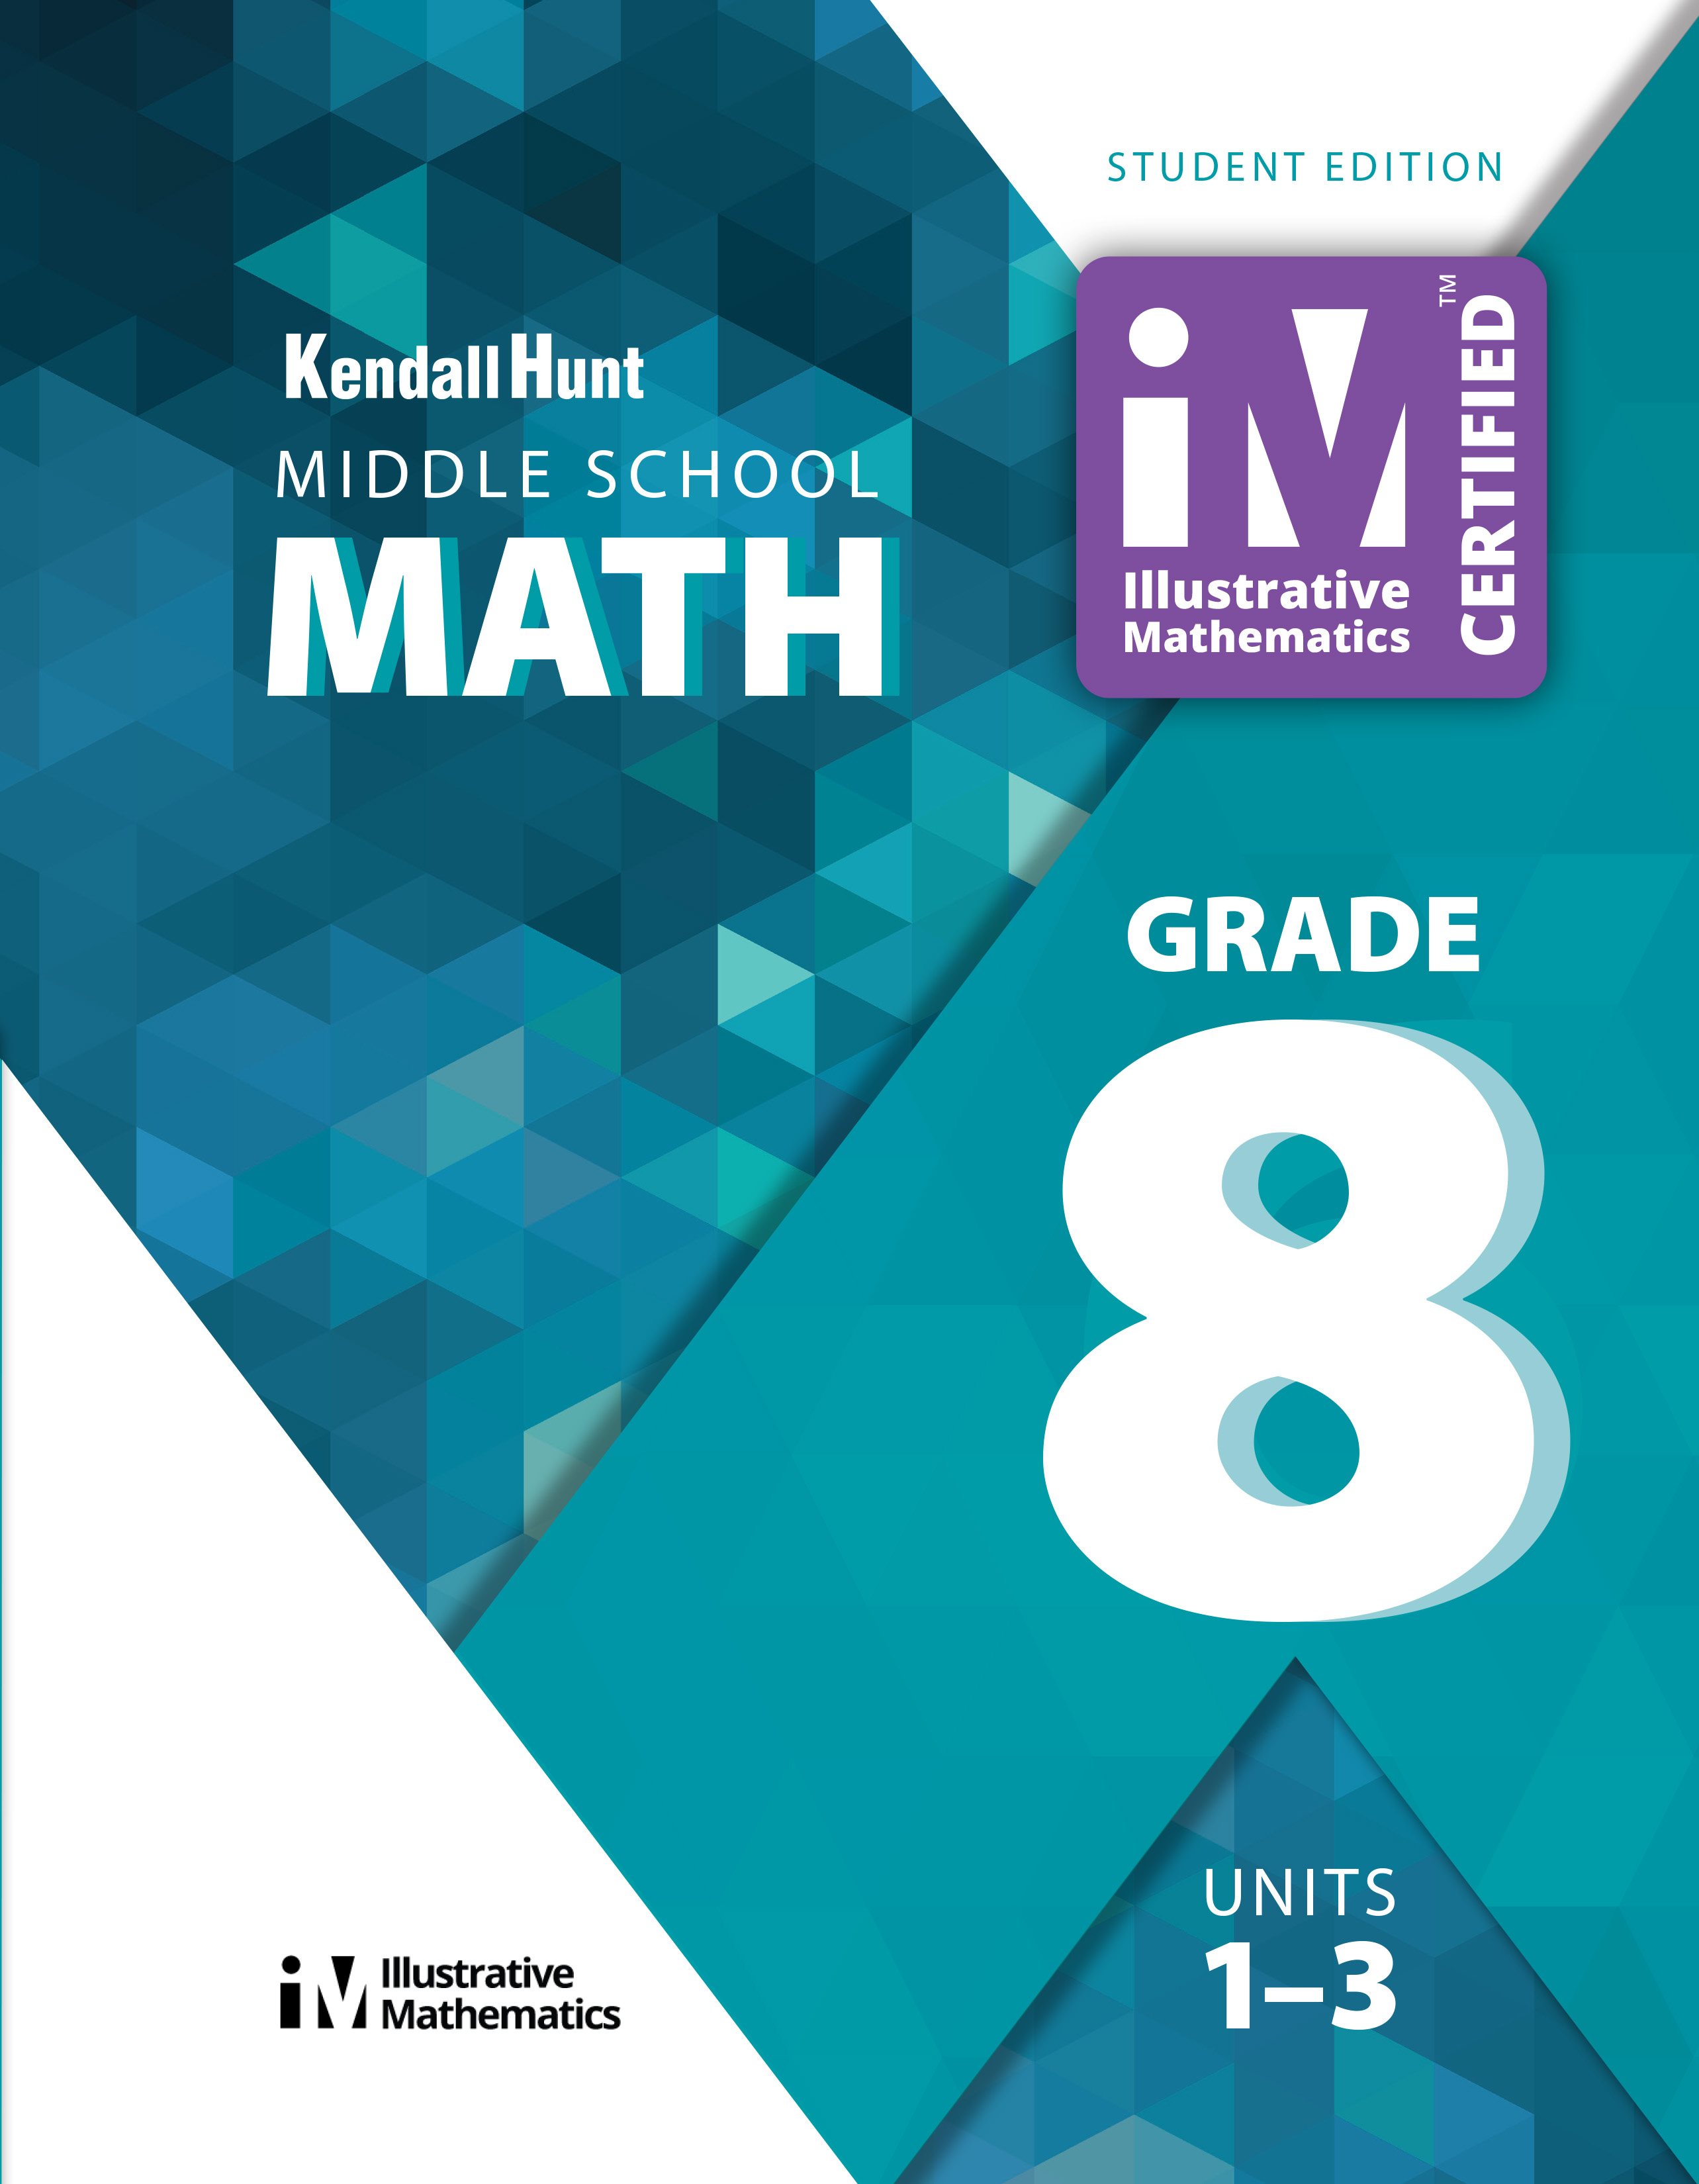 Illustrative Mathematics Grade 8 Middle School Math Teacher Guide